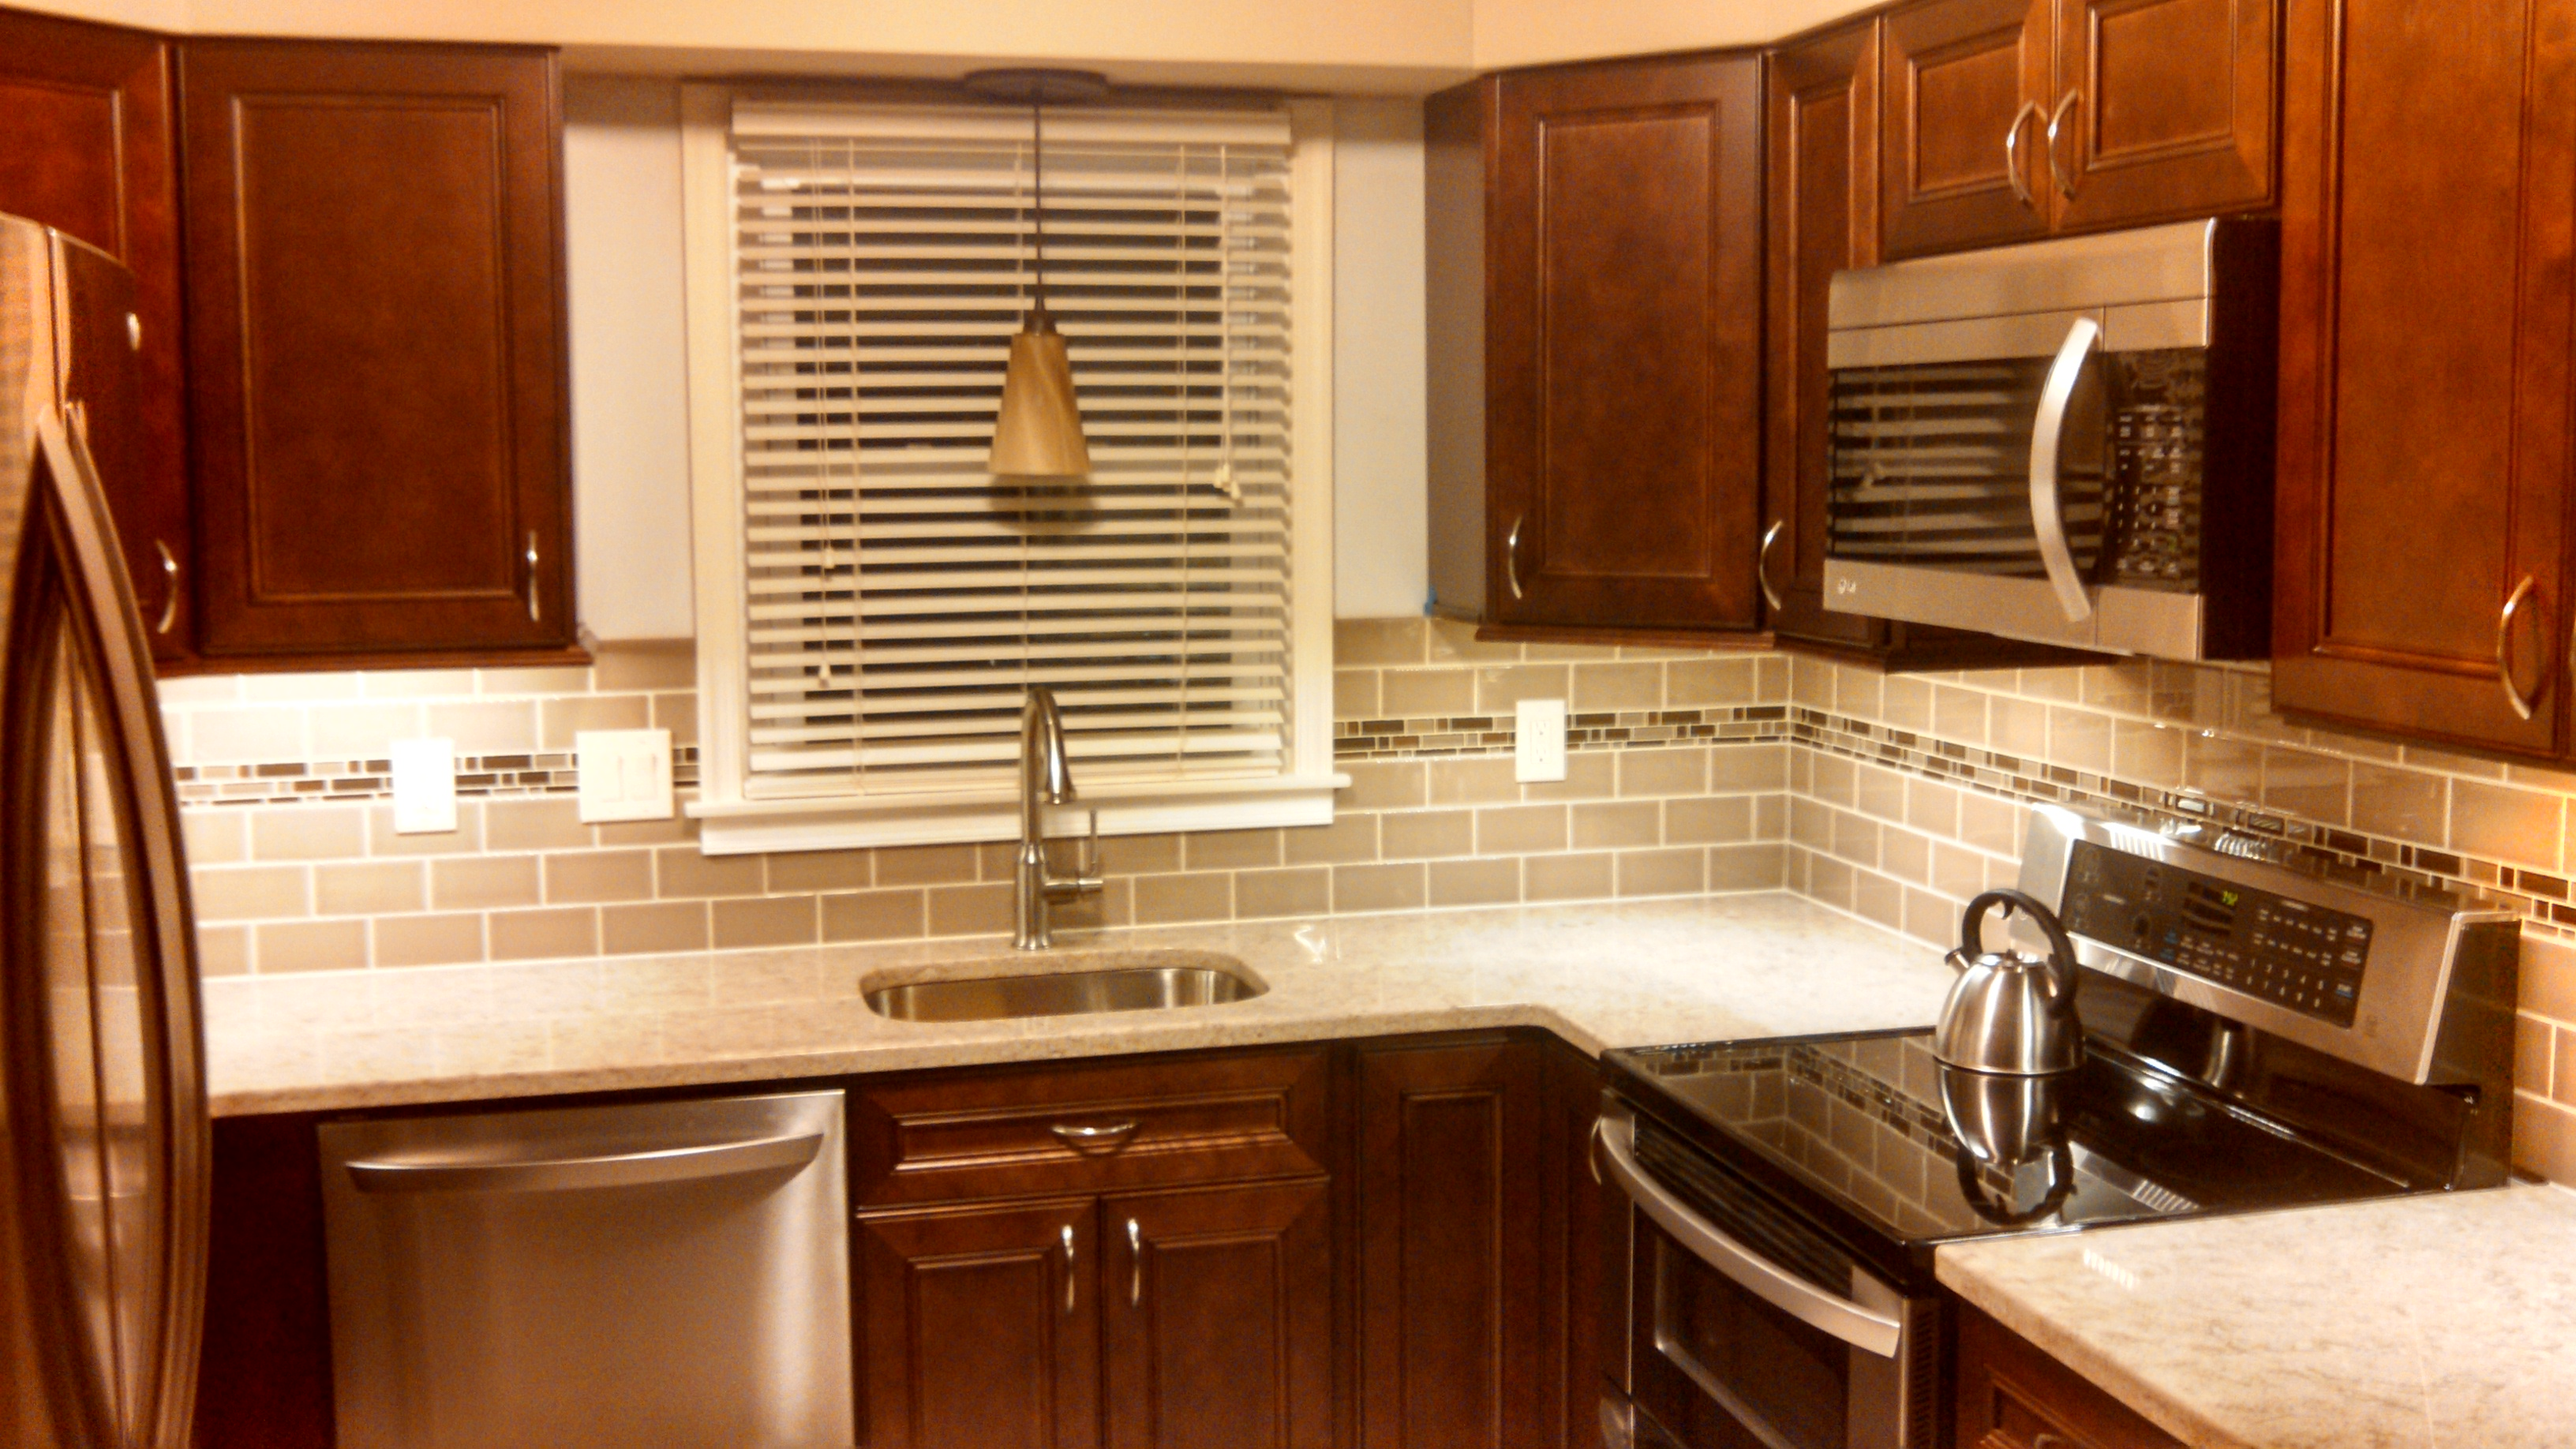 Kitchen Cabinets Baltimore Kitchen Remodeling Project In Baltimore Maryland